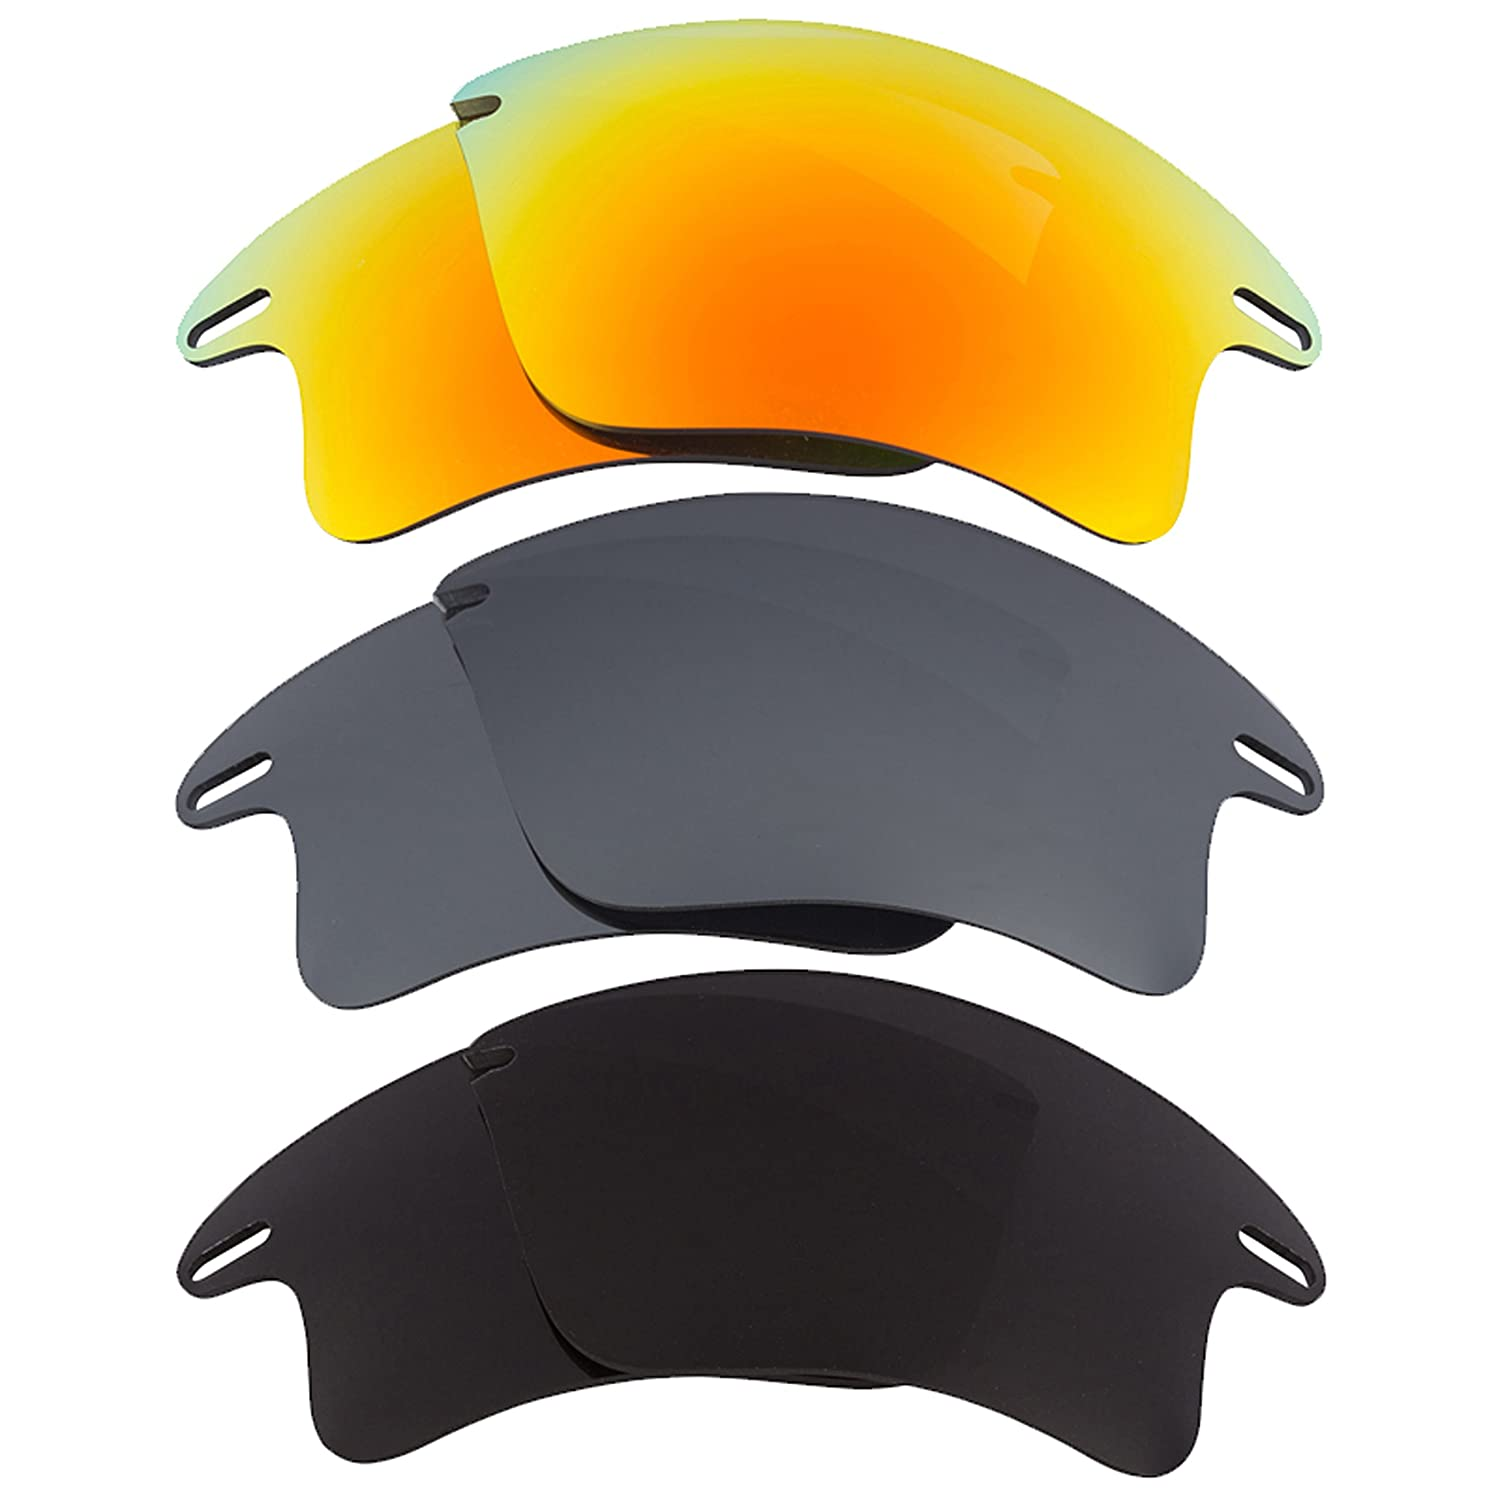 833abf5373d Fast Jacket XL Replacement Lenses Yellow Silver Black by SEEK fits OAKLEY  at Amazon Men s Clothing store